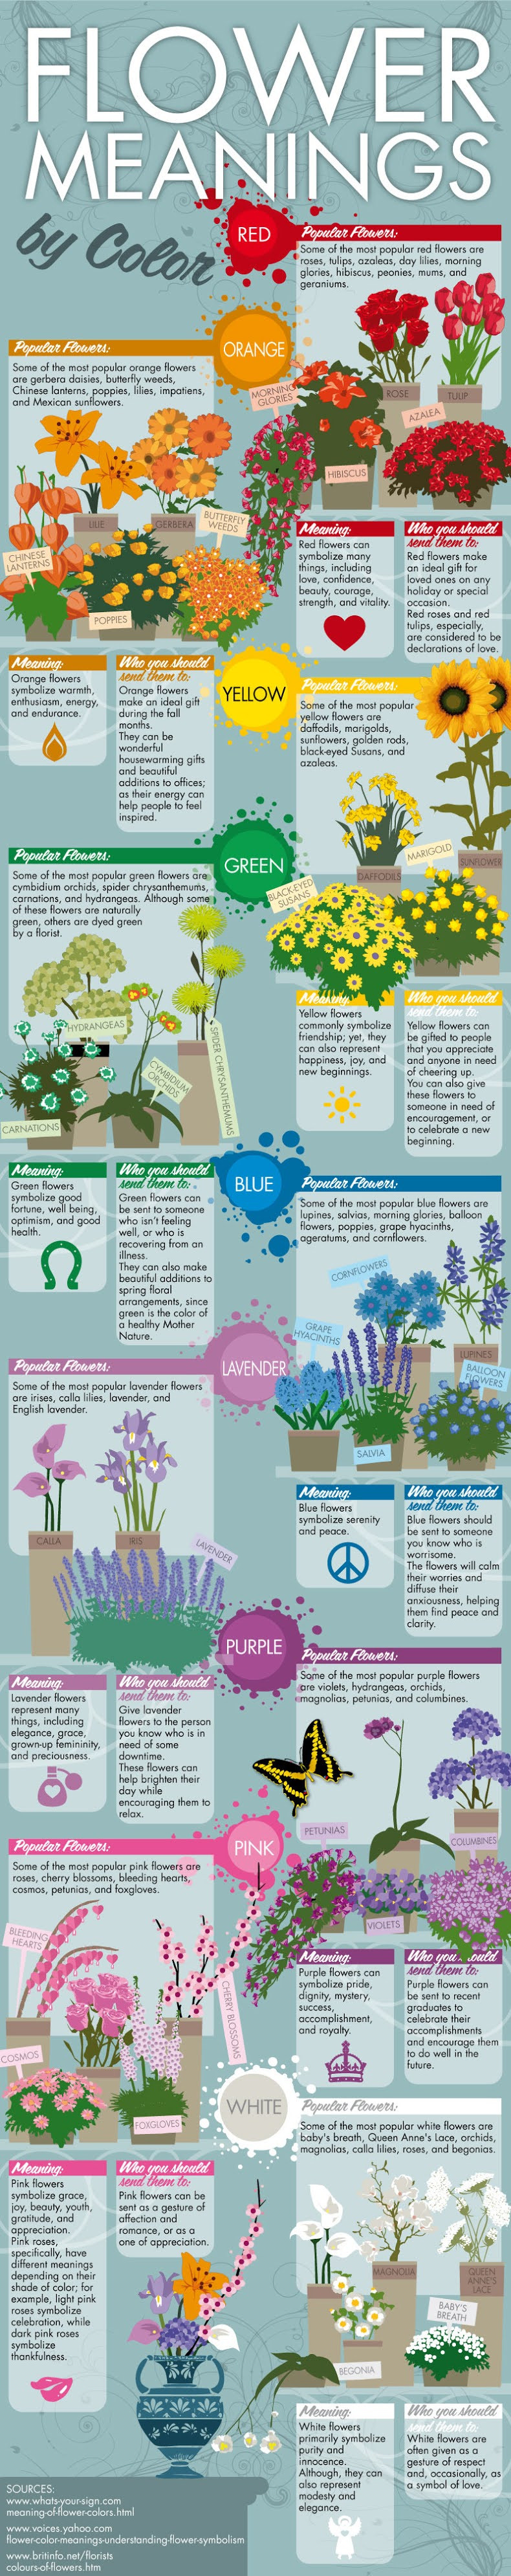 Flower Meanings By Color #infographic #Flowers #infographics #Flower Meanings #Flowers Color